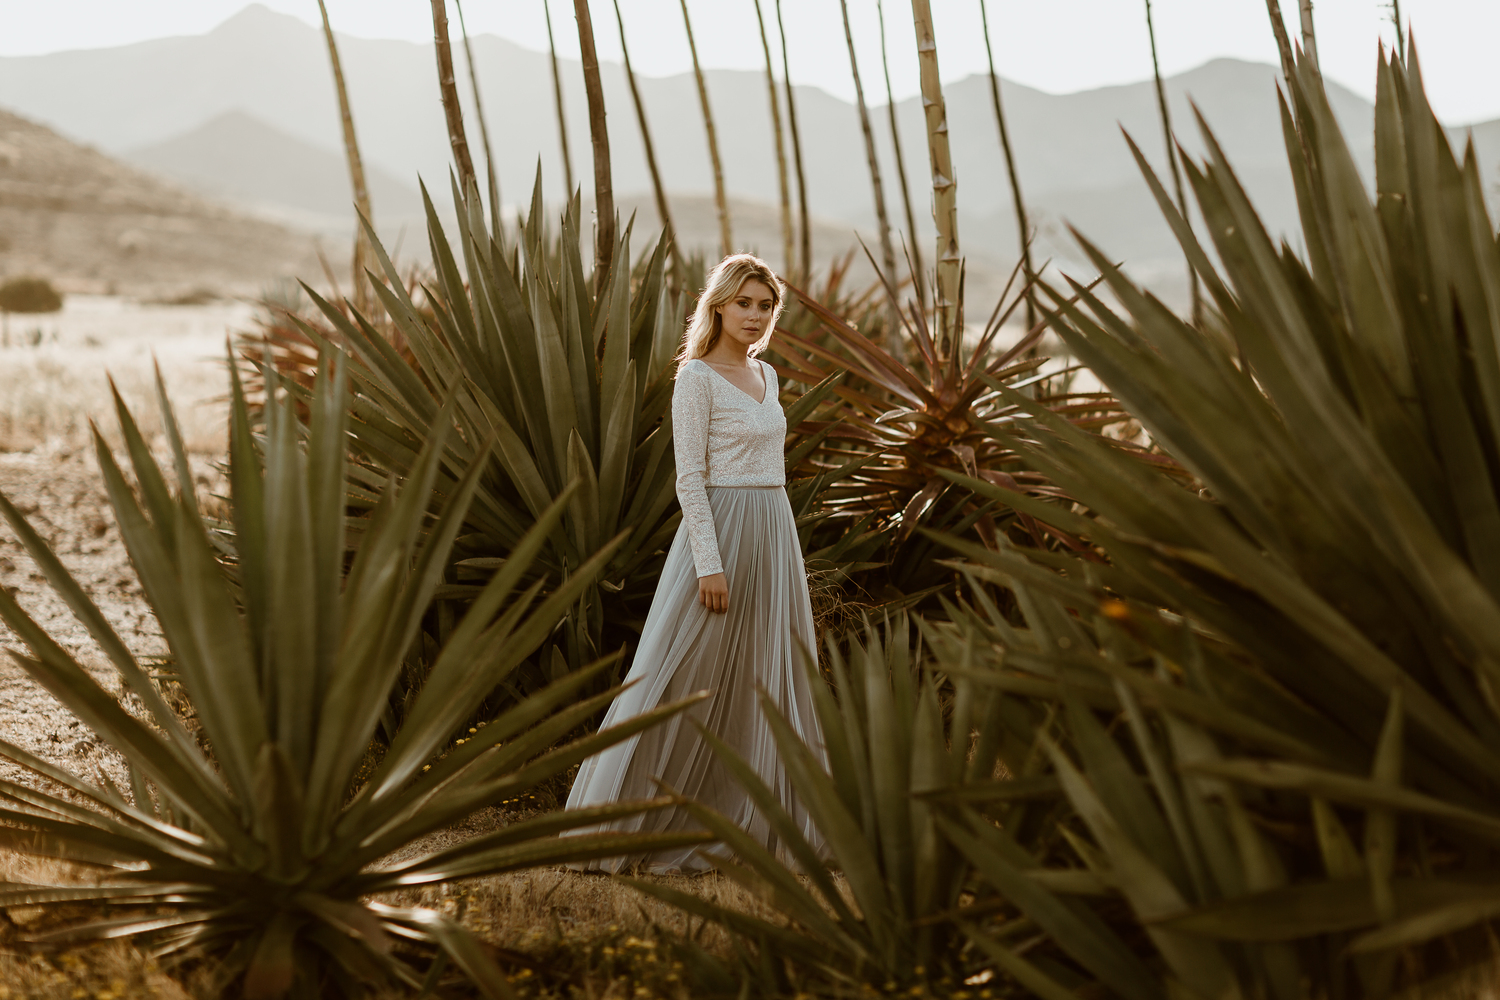 Noni – Perfect wedding dresses for your beach wedding